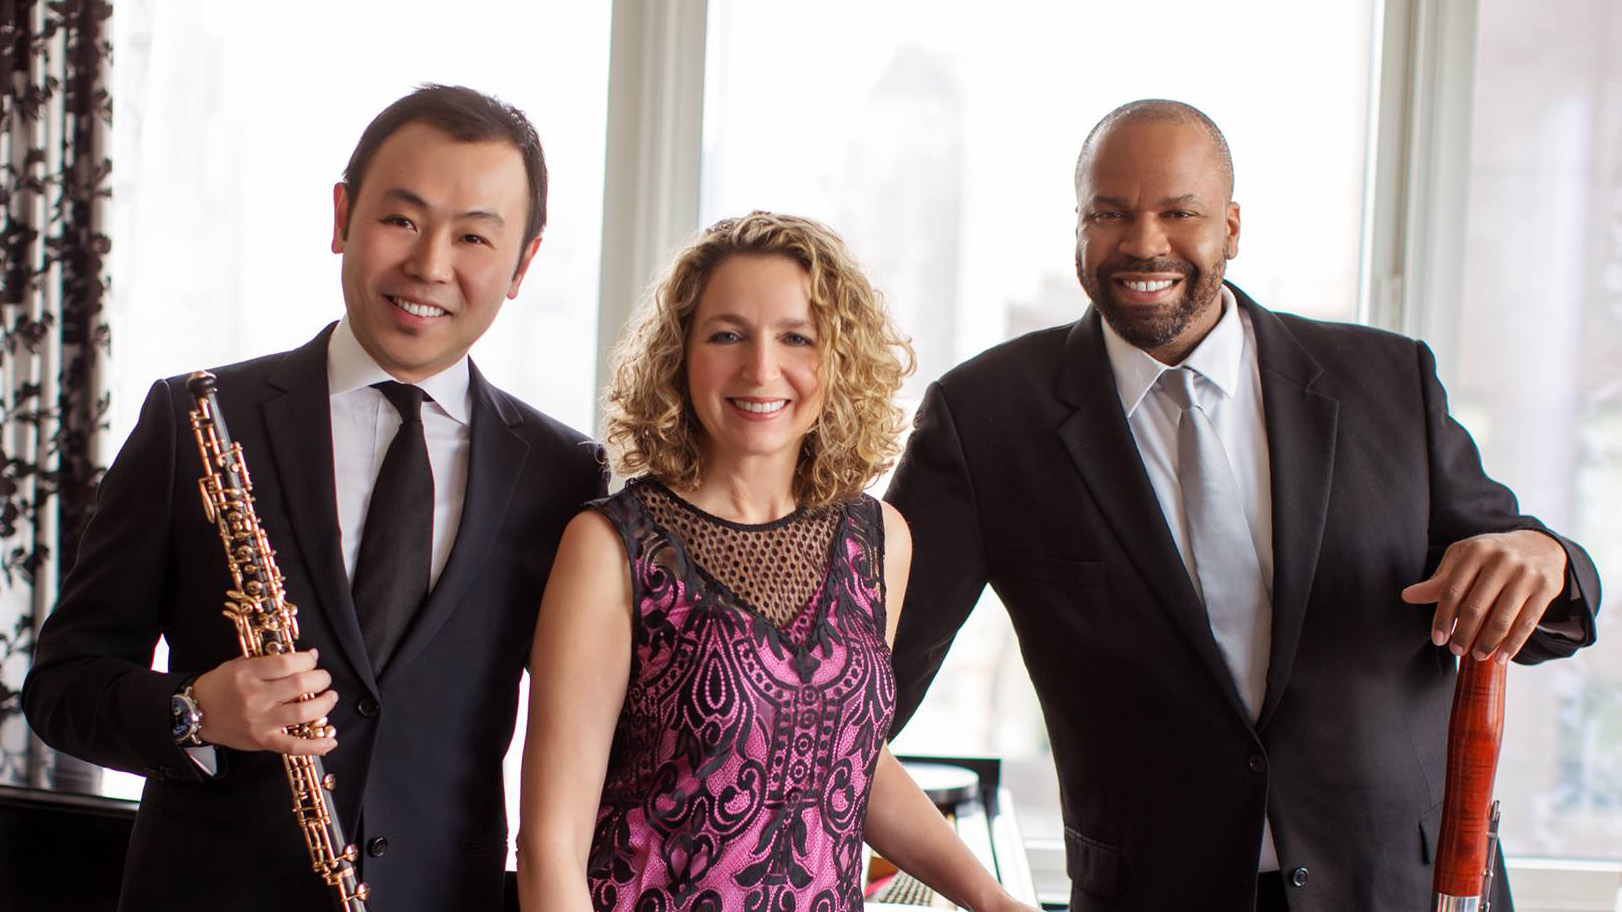 Bryan Young with Poulenc Trio Three people smiling